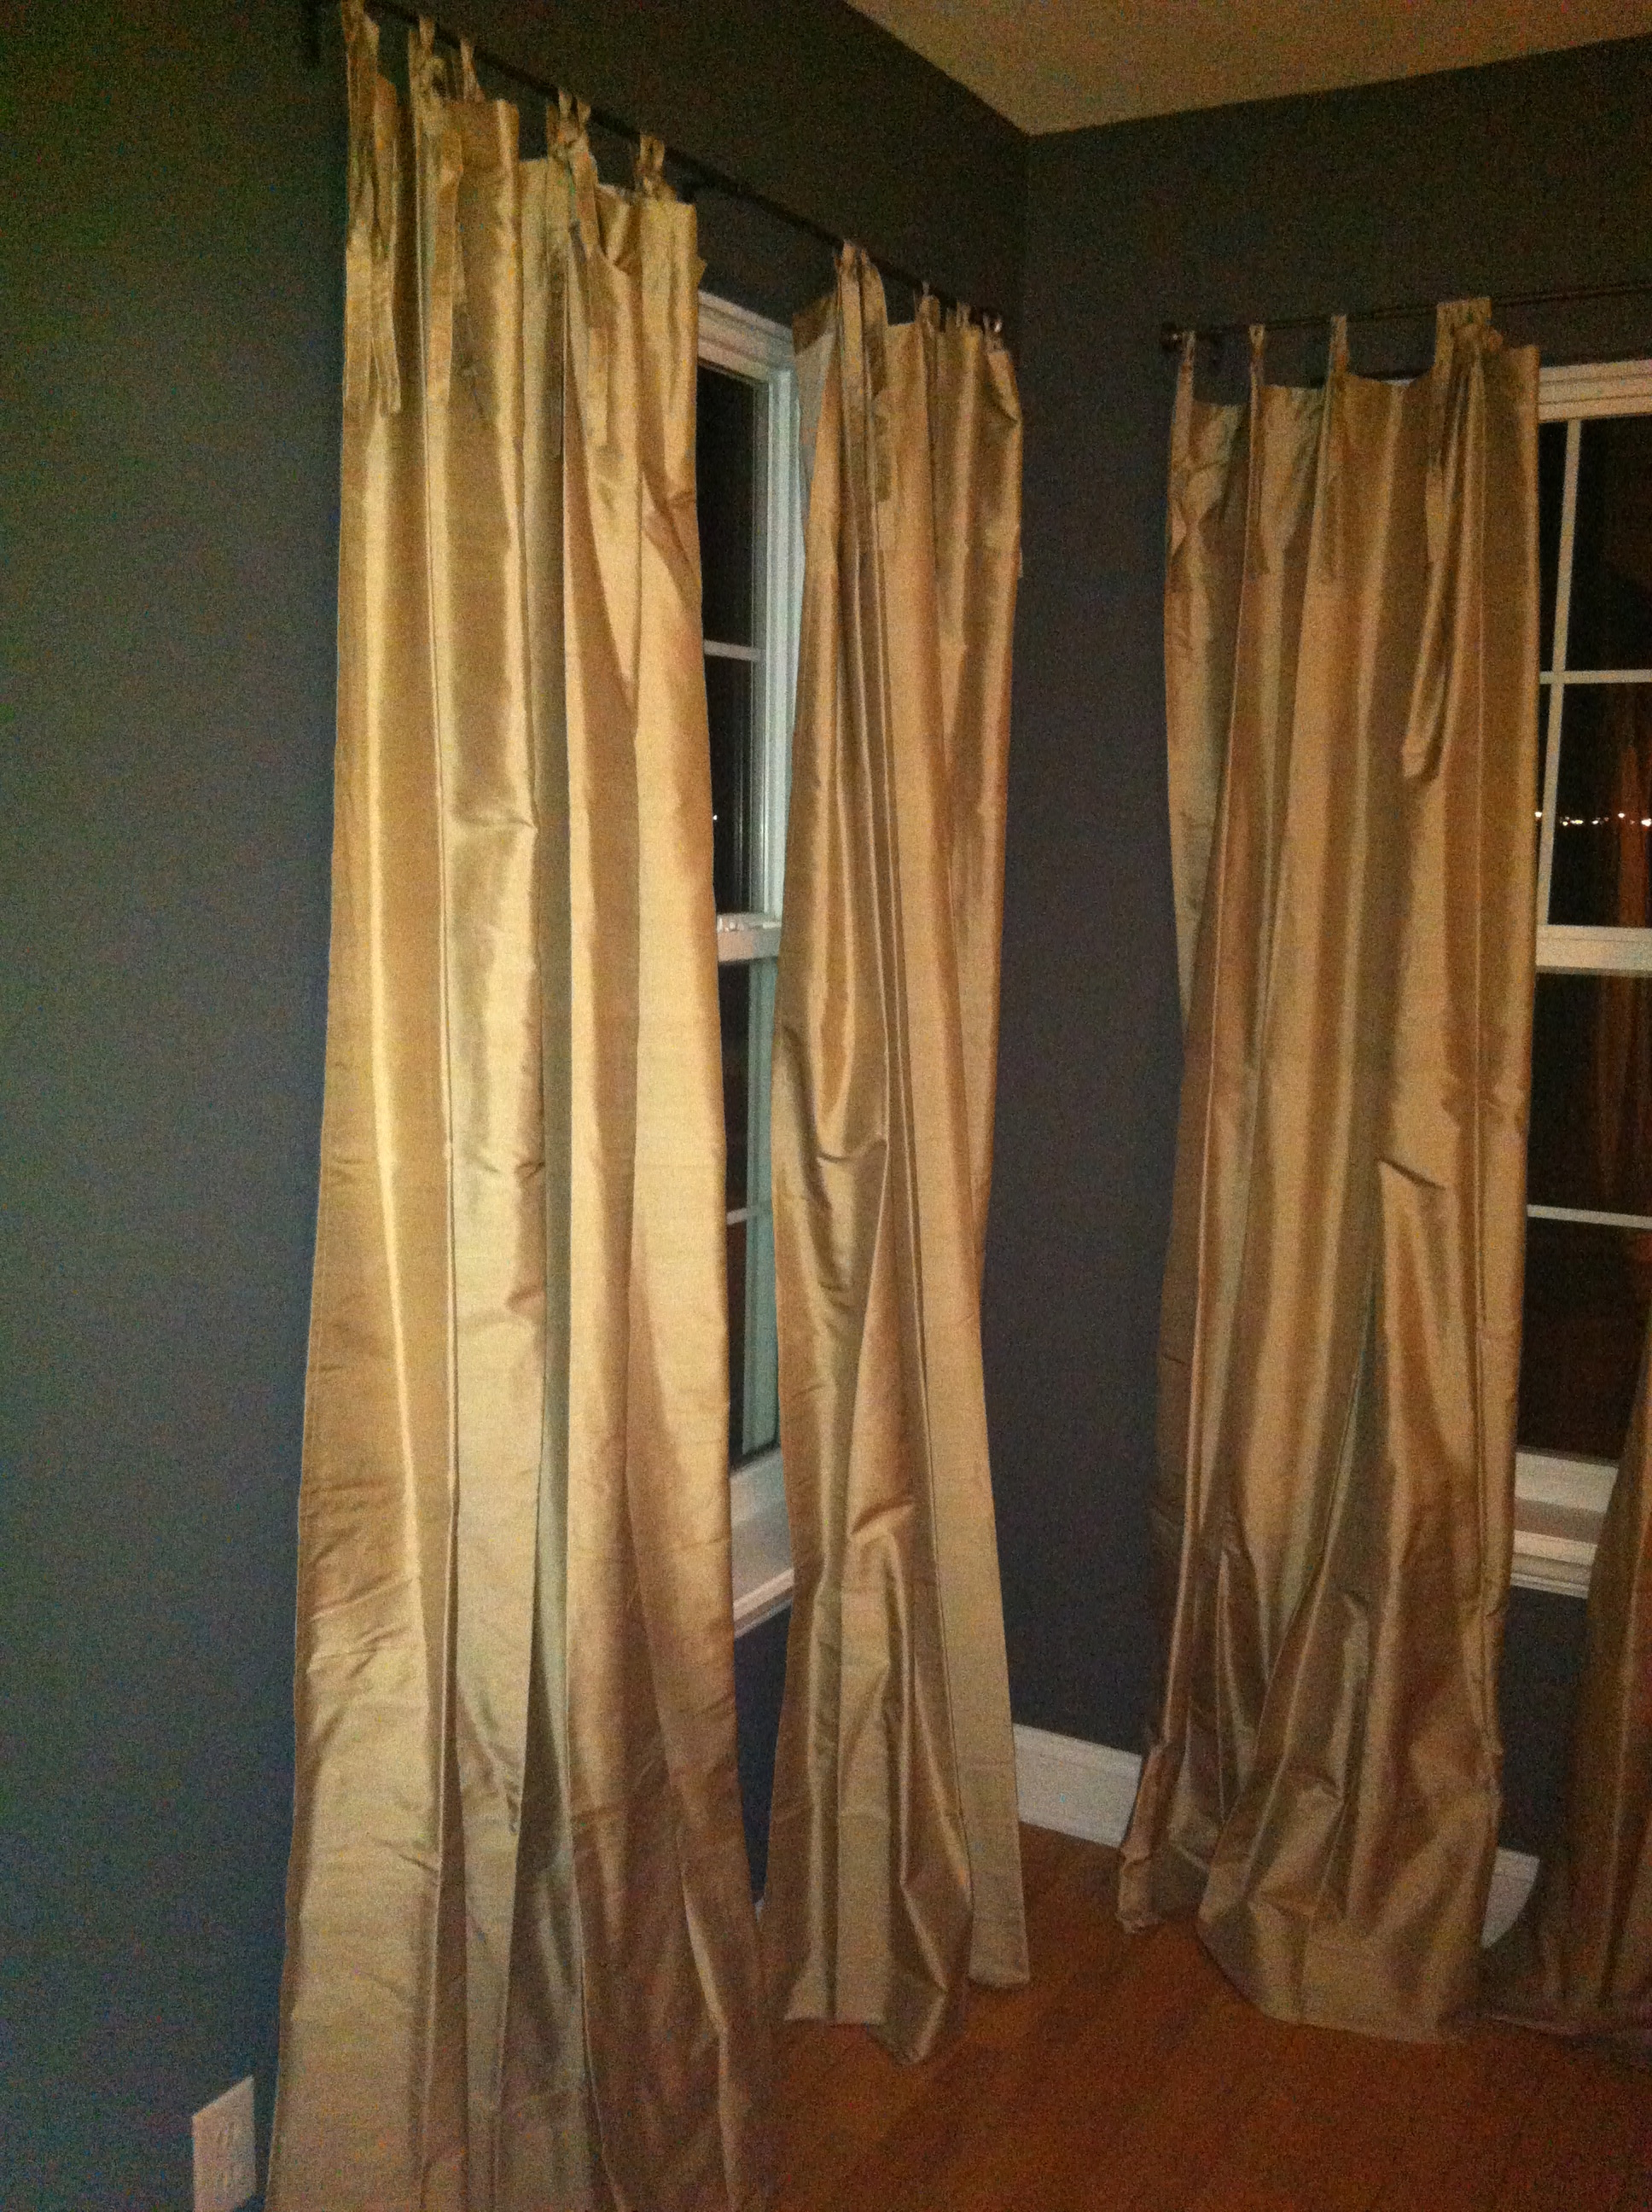 Pottery barn silk curtains -  Pottery Barn Silk Tie Drapes Also Rob Built A Desk Vanity For The Guest Bedroom I M Excited To Get A Chair Baskets For The Cubby Holes